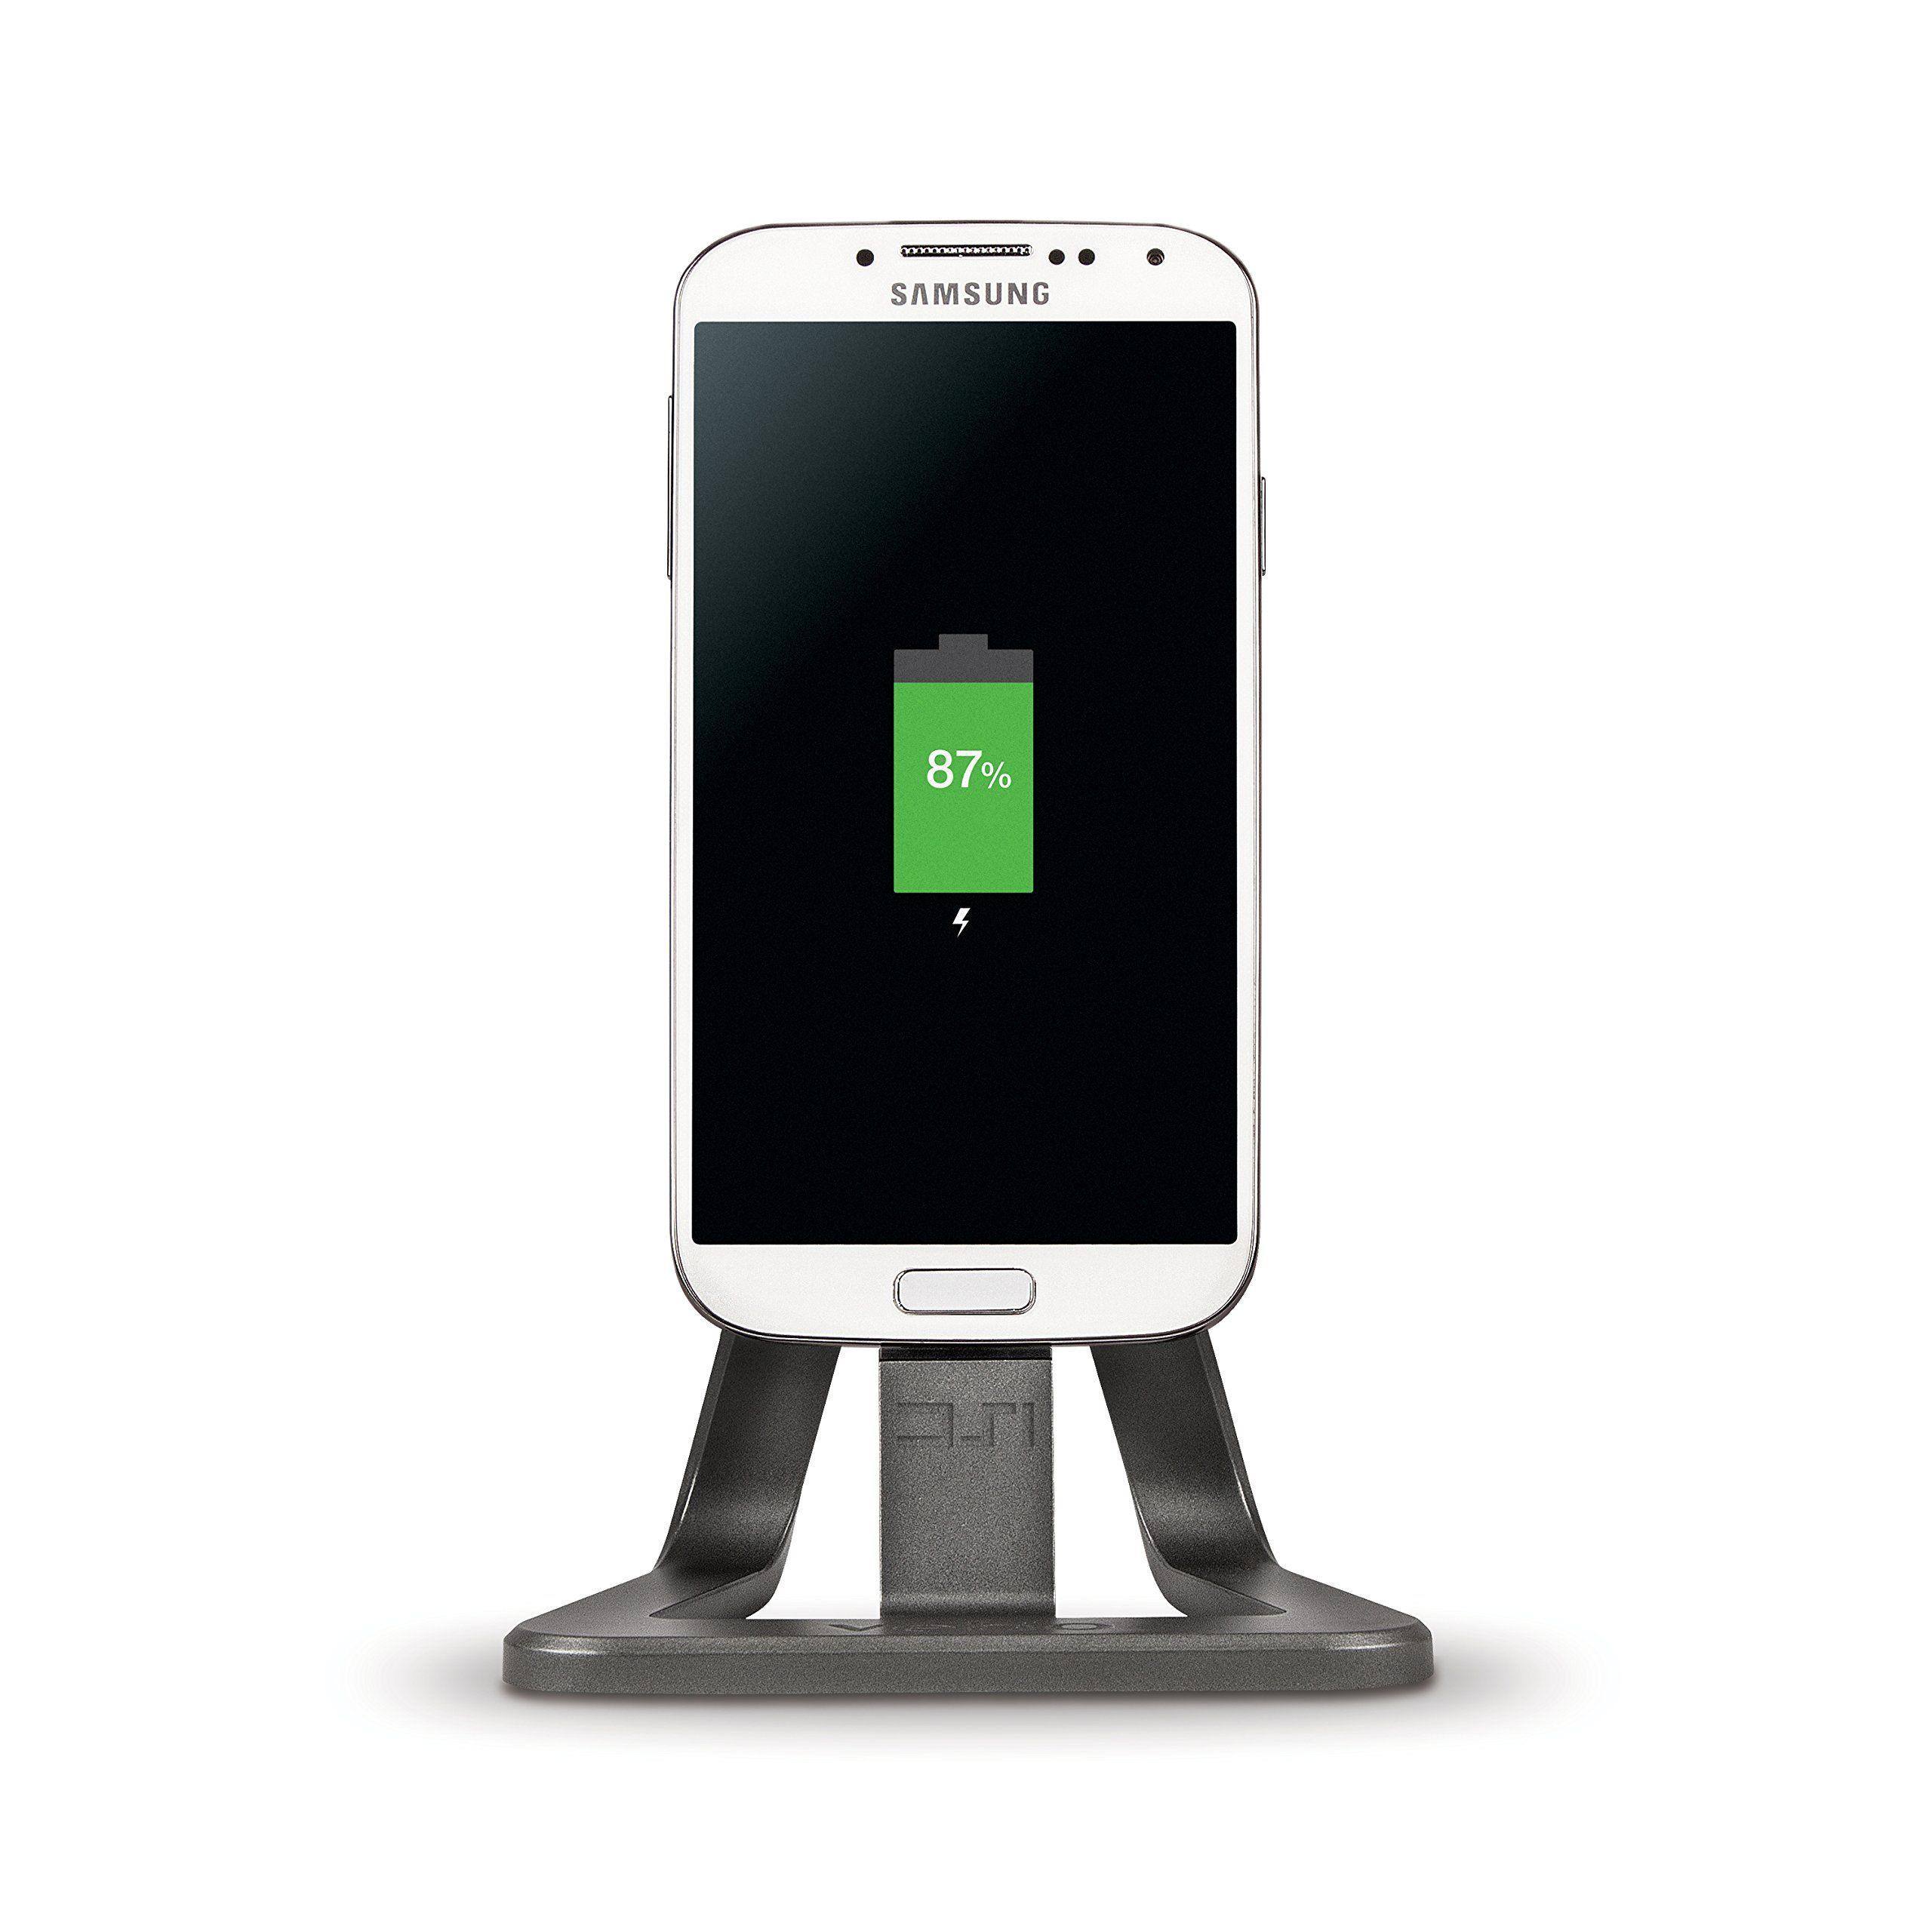 Veho Vpp-901-msb - Ds-1 Charging Dock For Android Smartphone - Docking - Smartphone, Iphone 5s, Ipod Touch, Iphone 5, Iphone 6, Iphone 6s - Charging Capability - Synchronizing Capability (vpp-901-msb)